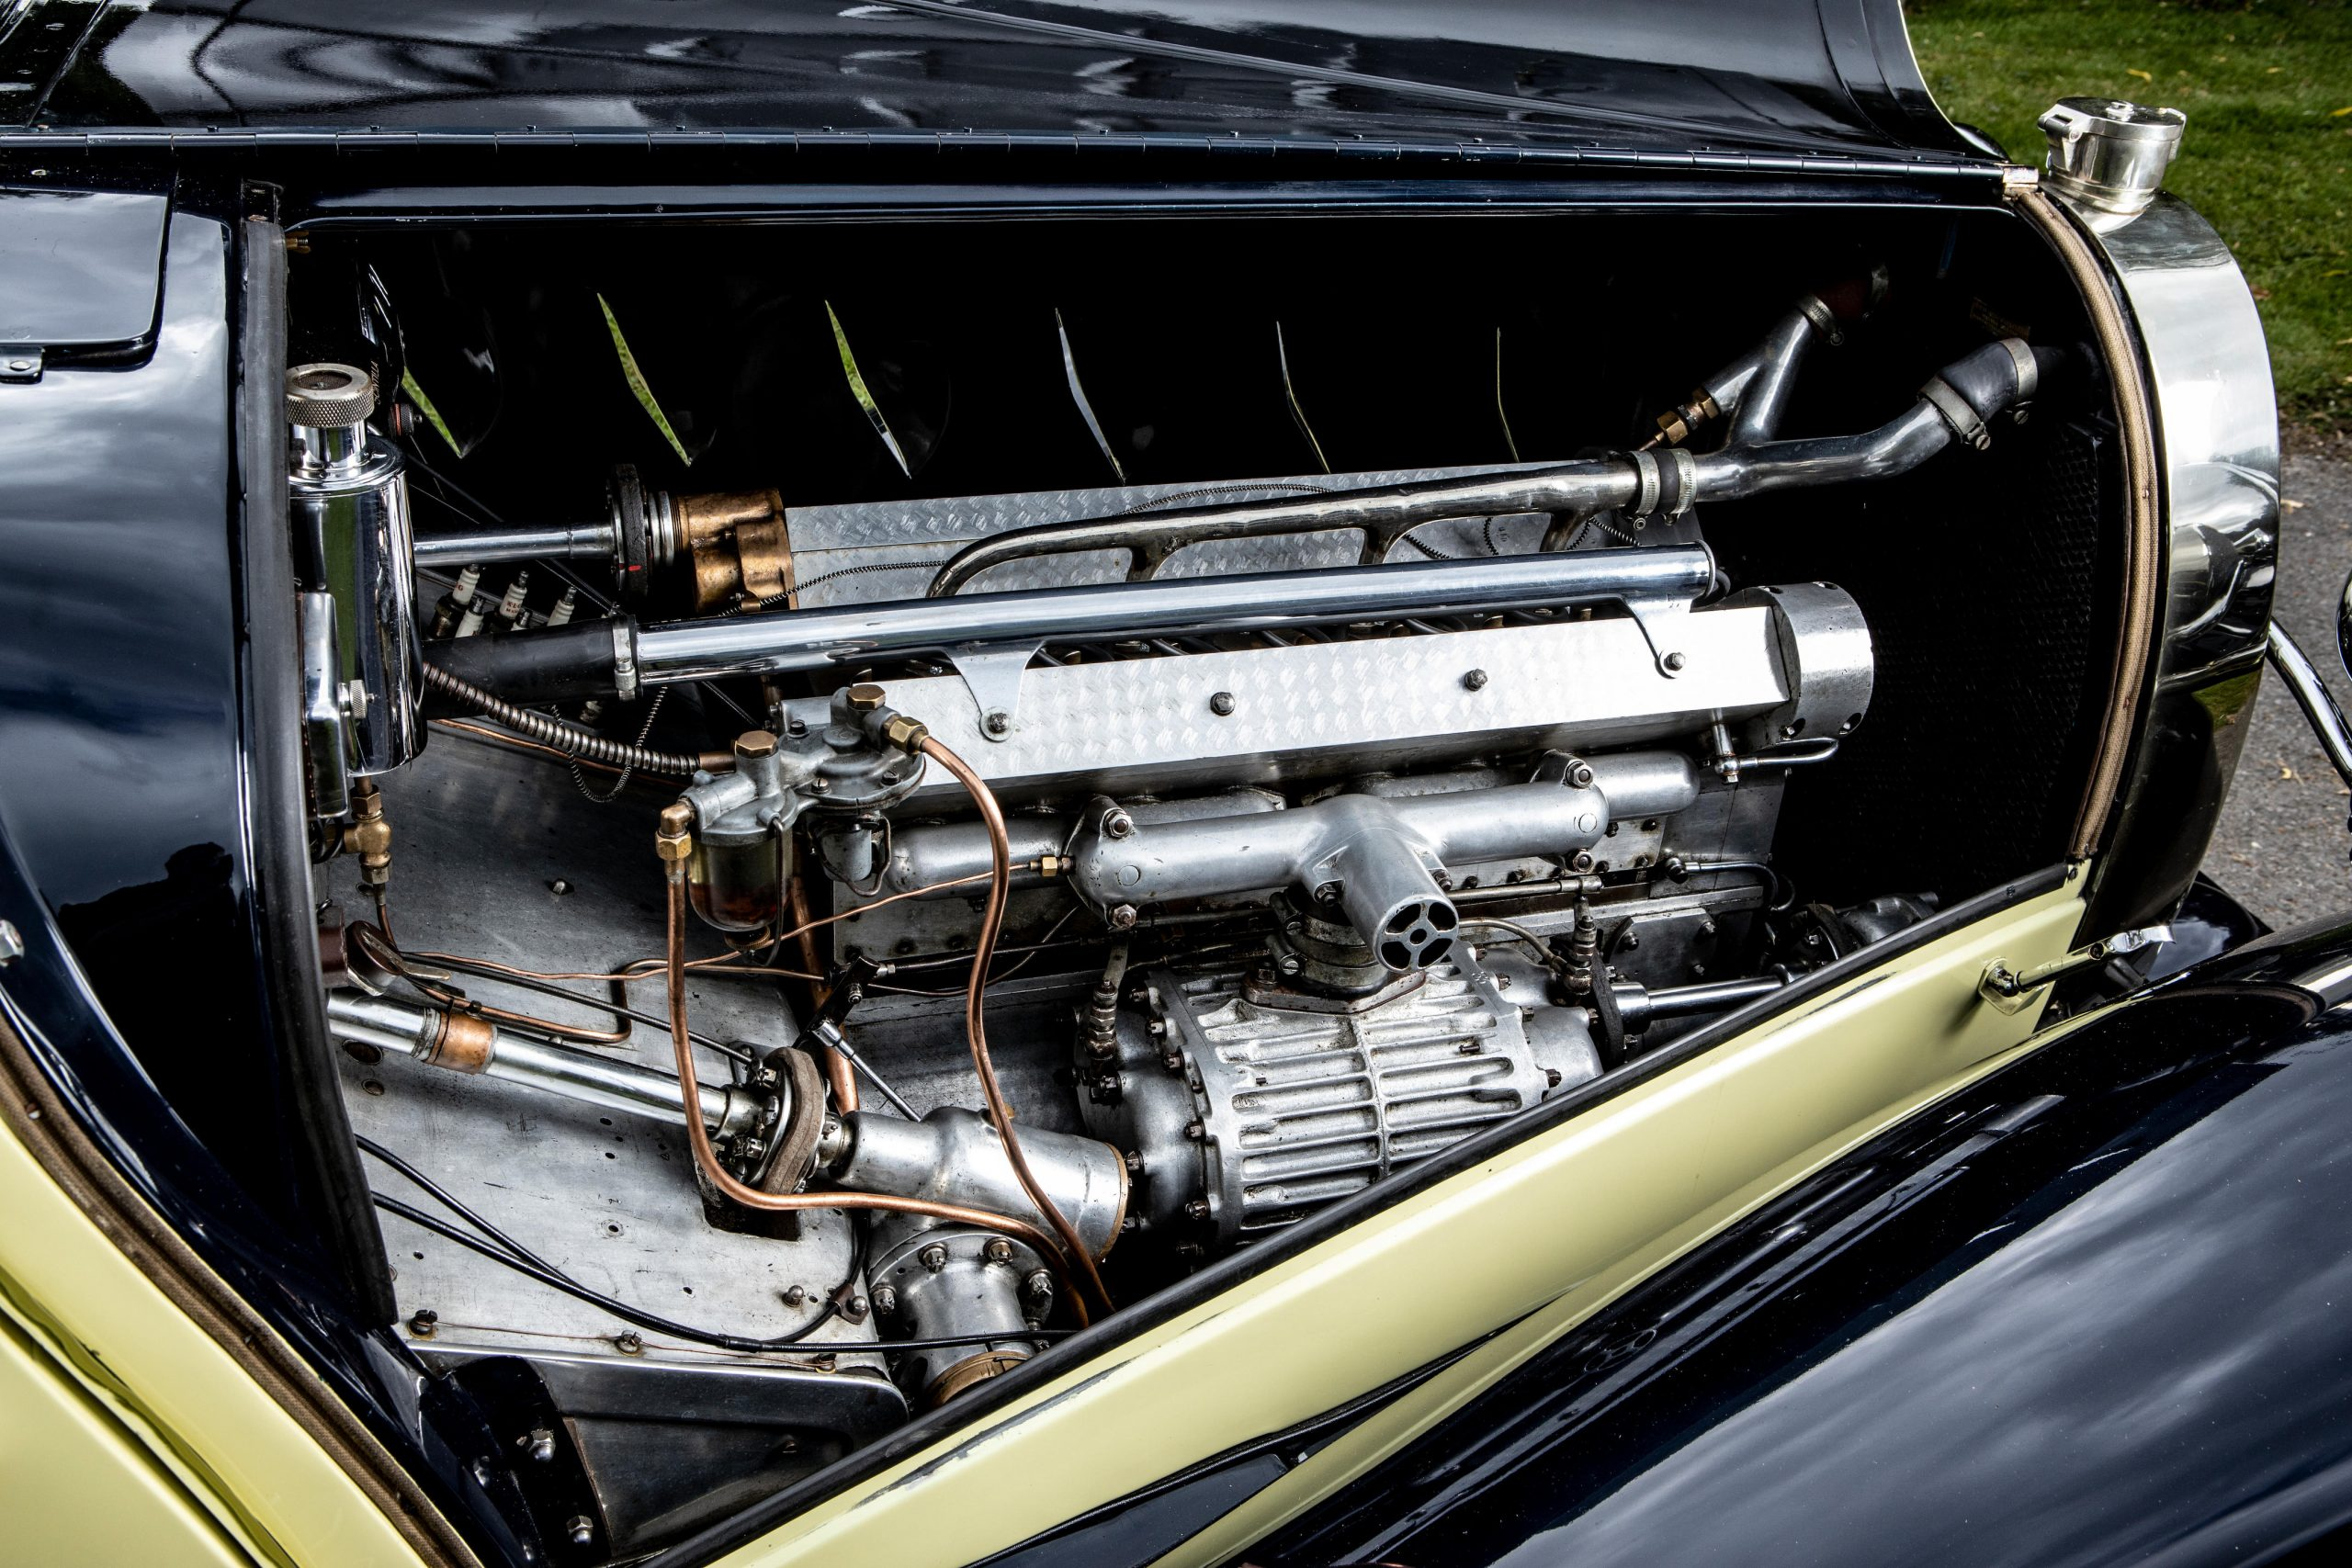 1931 Bugatti Type 55 Figoni engine bay